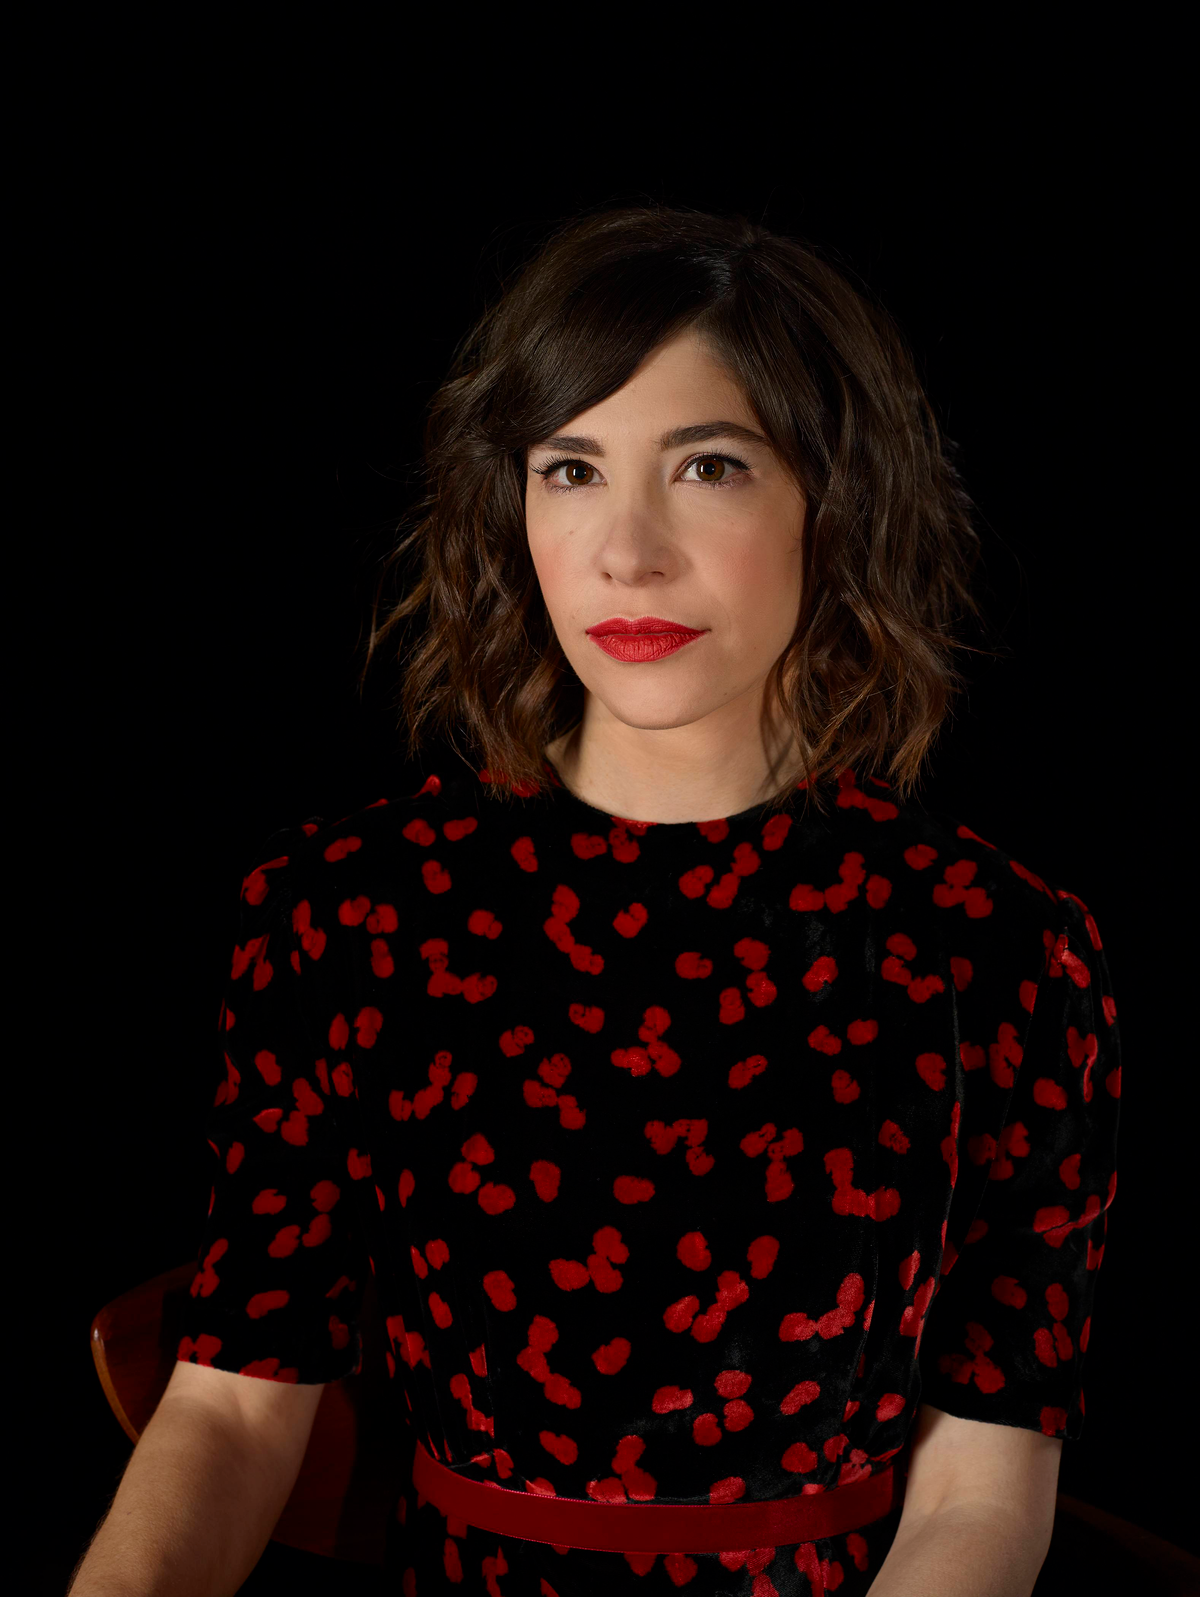 Carrie Brownstein. (photo: Catherine Opie/IFC Portlandia S5)